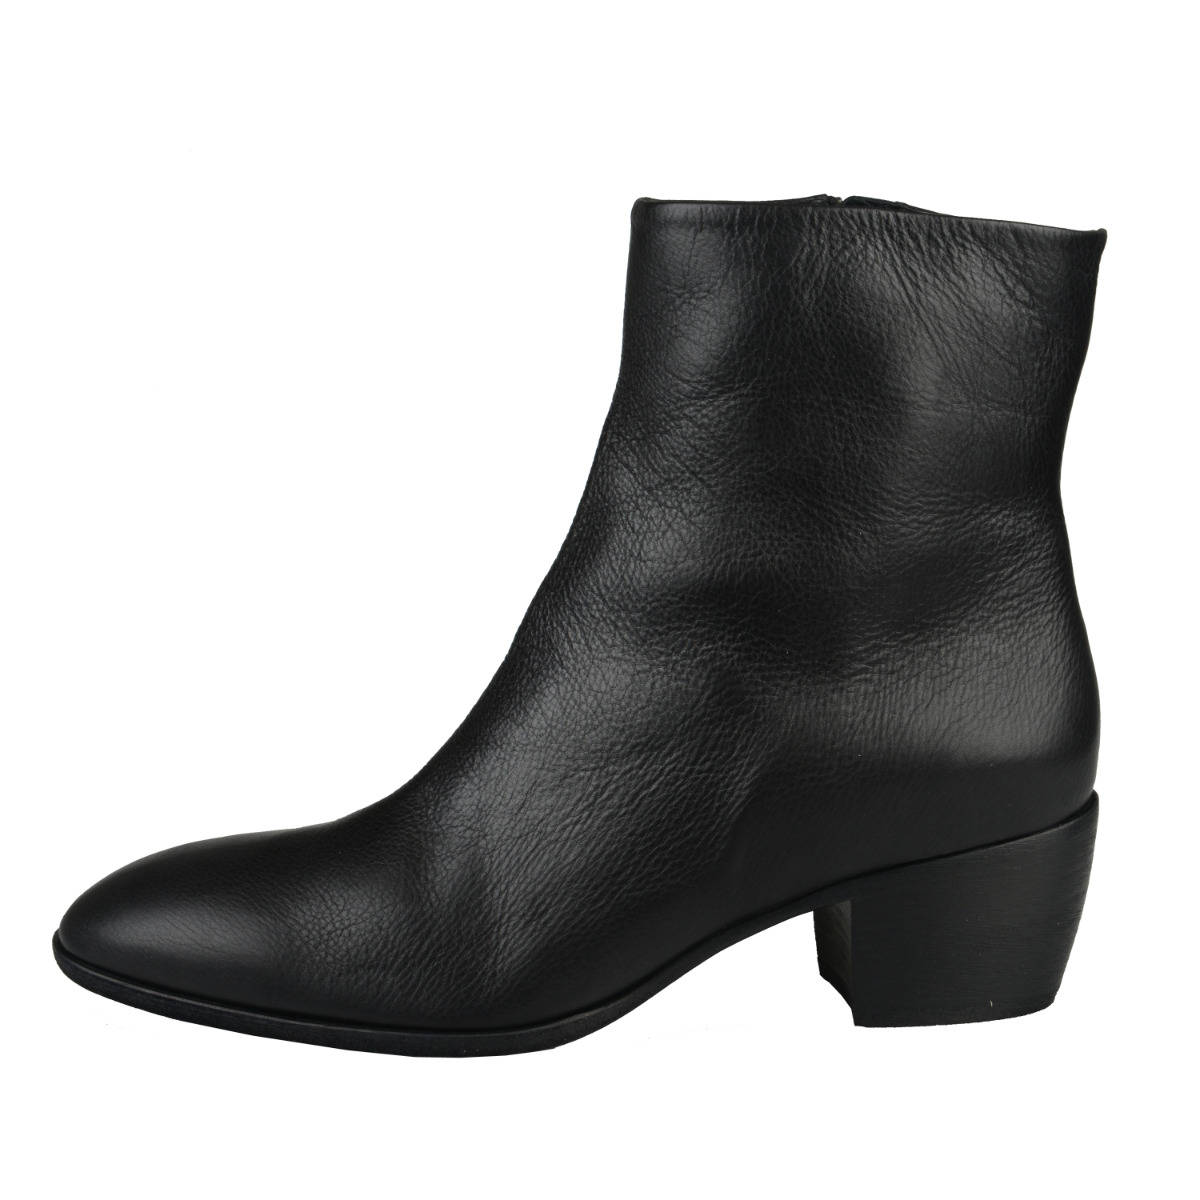 Giuseppe Zanotti Homme Men's Black Leather Ankle Boots Shoes ...